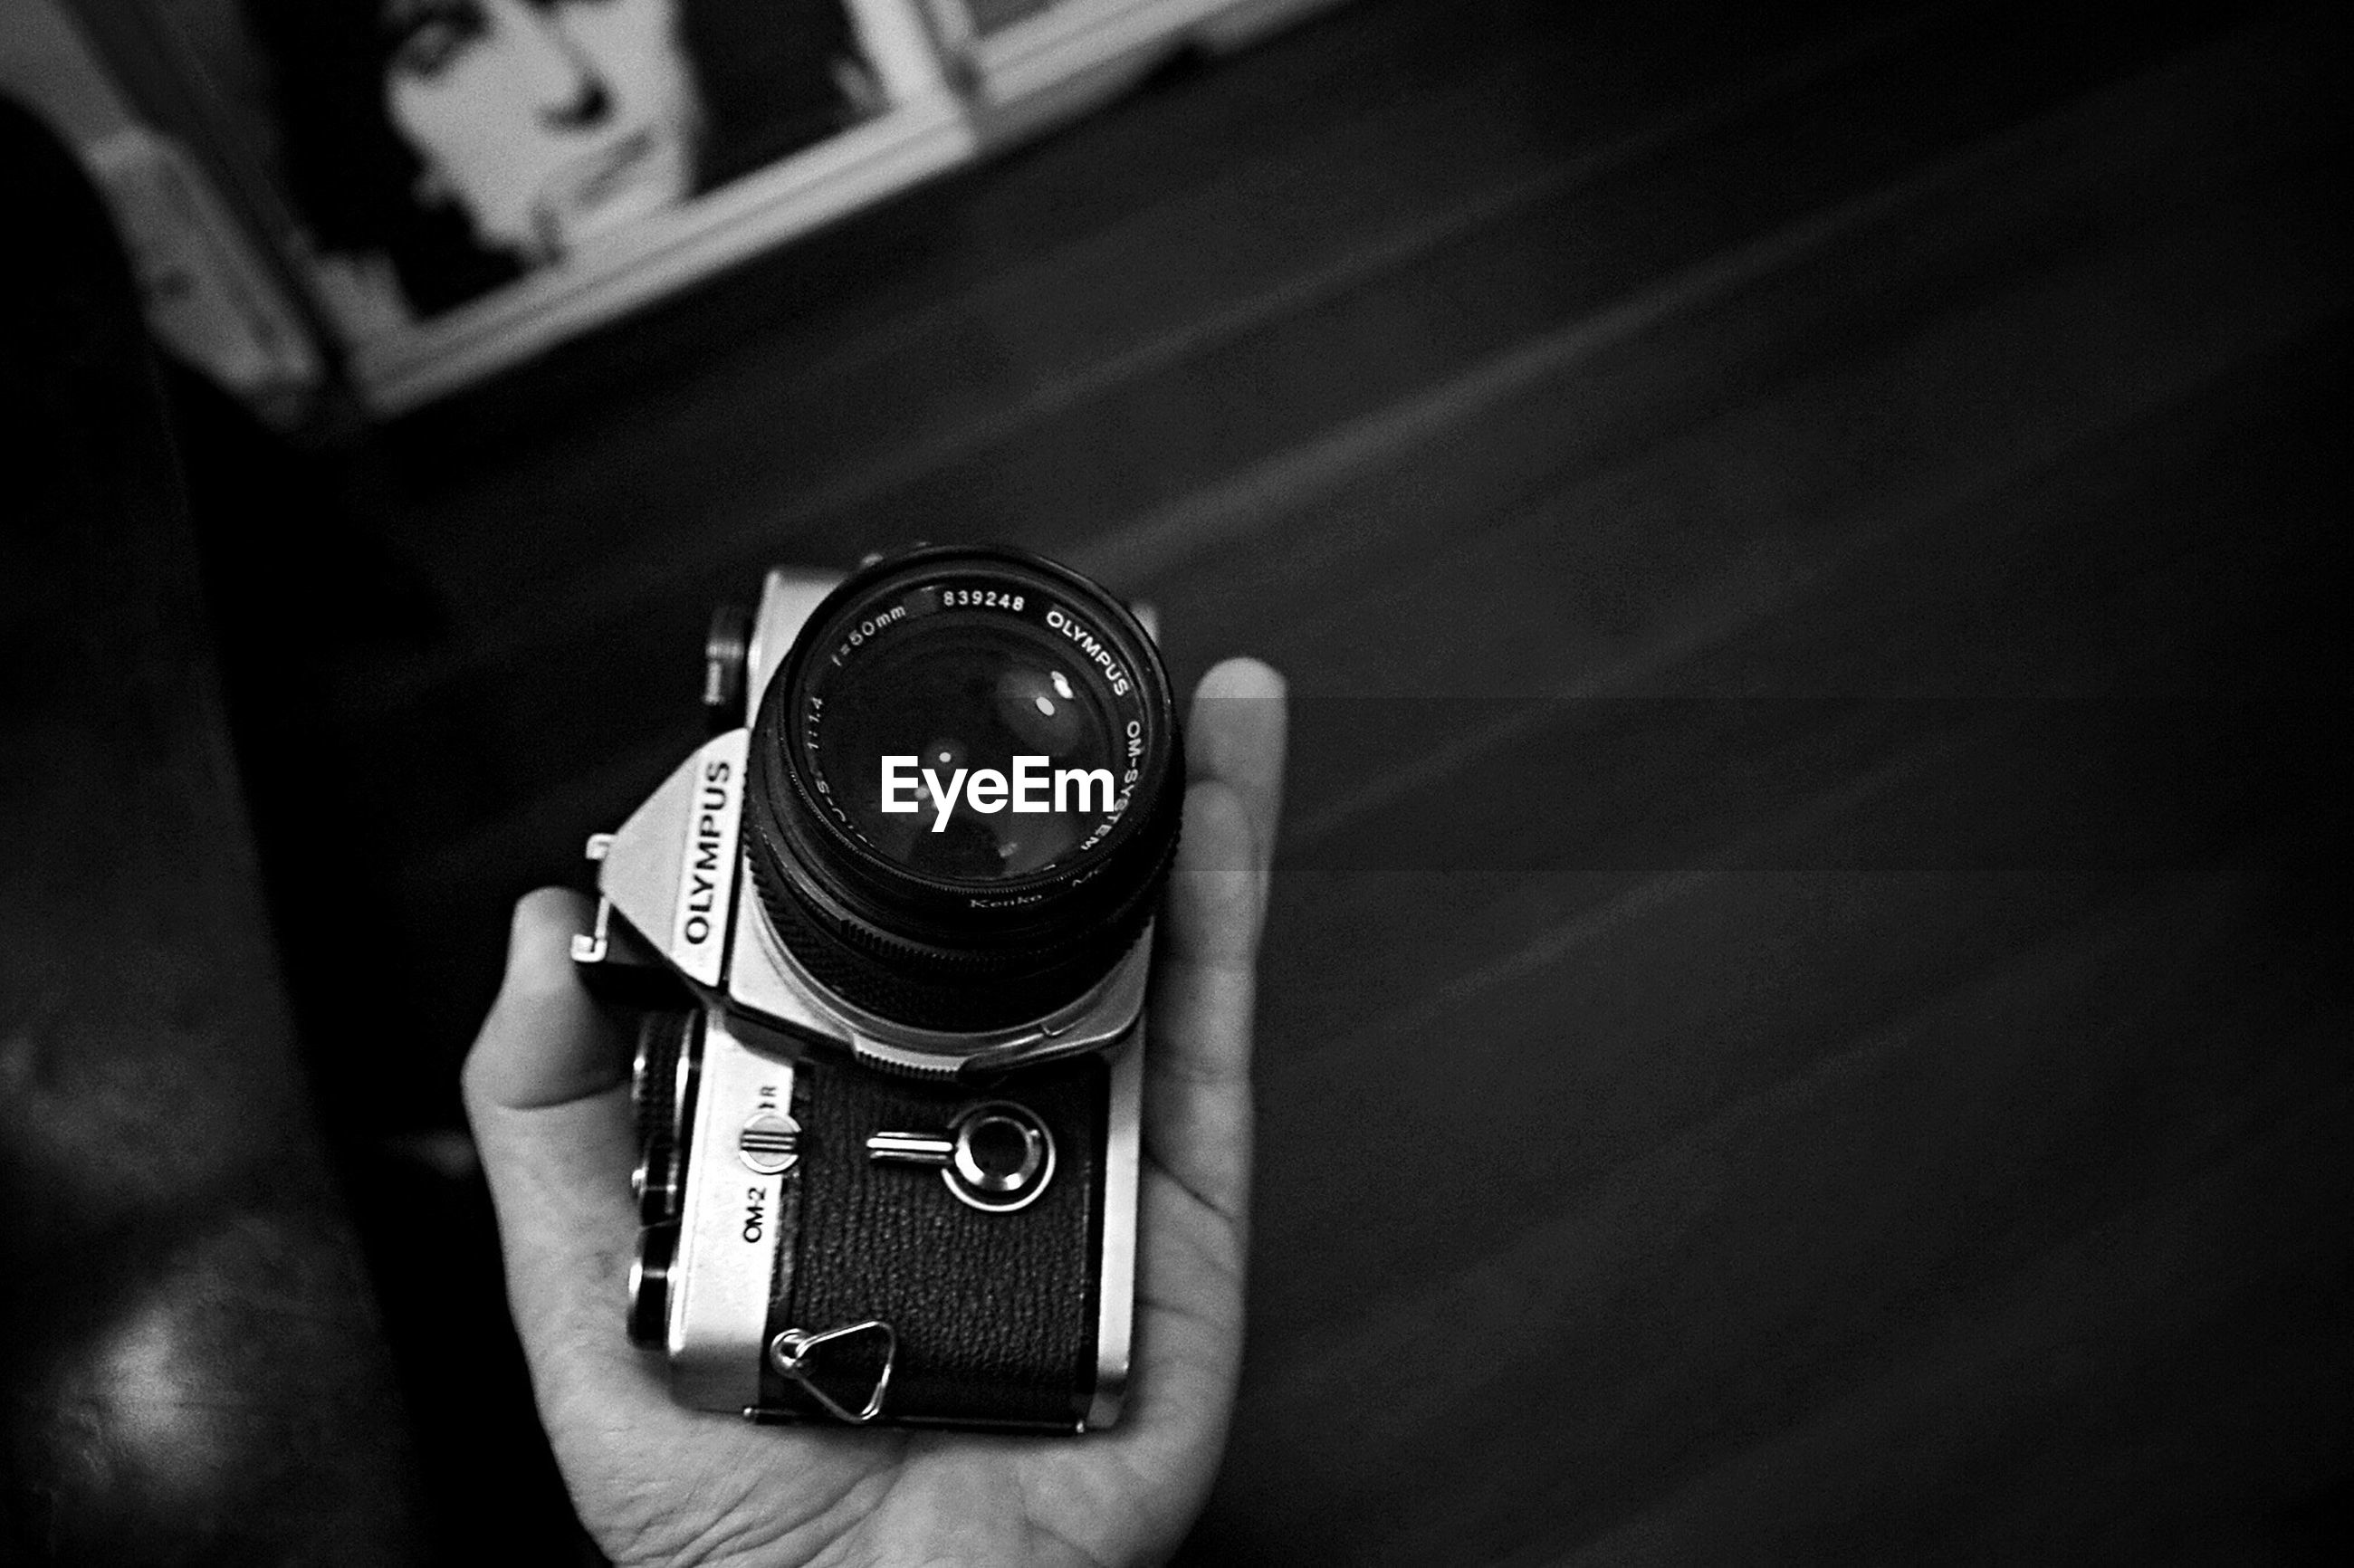 technology, photography themes, camera - photographic equipment, wireless technology, photographing, close-up, smart phone, focus on foreground, leisure activity, selective focus, lifestyles, lens - optical instrument, photographic equipment, part of